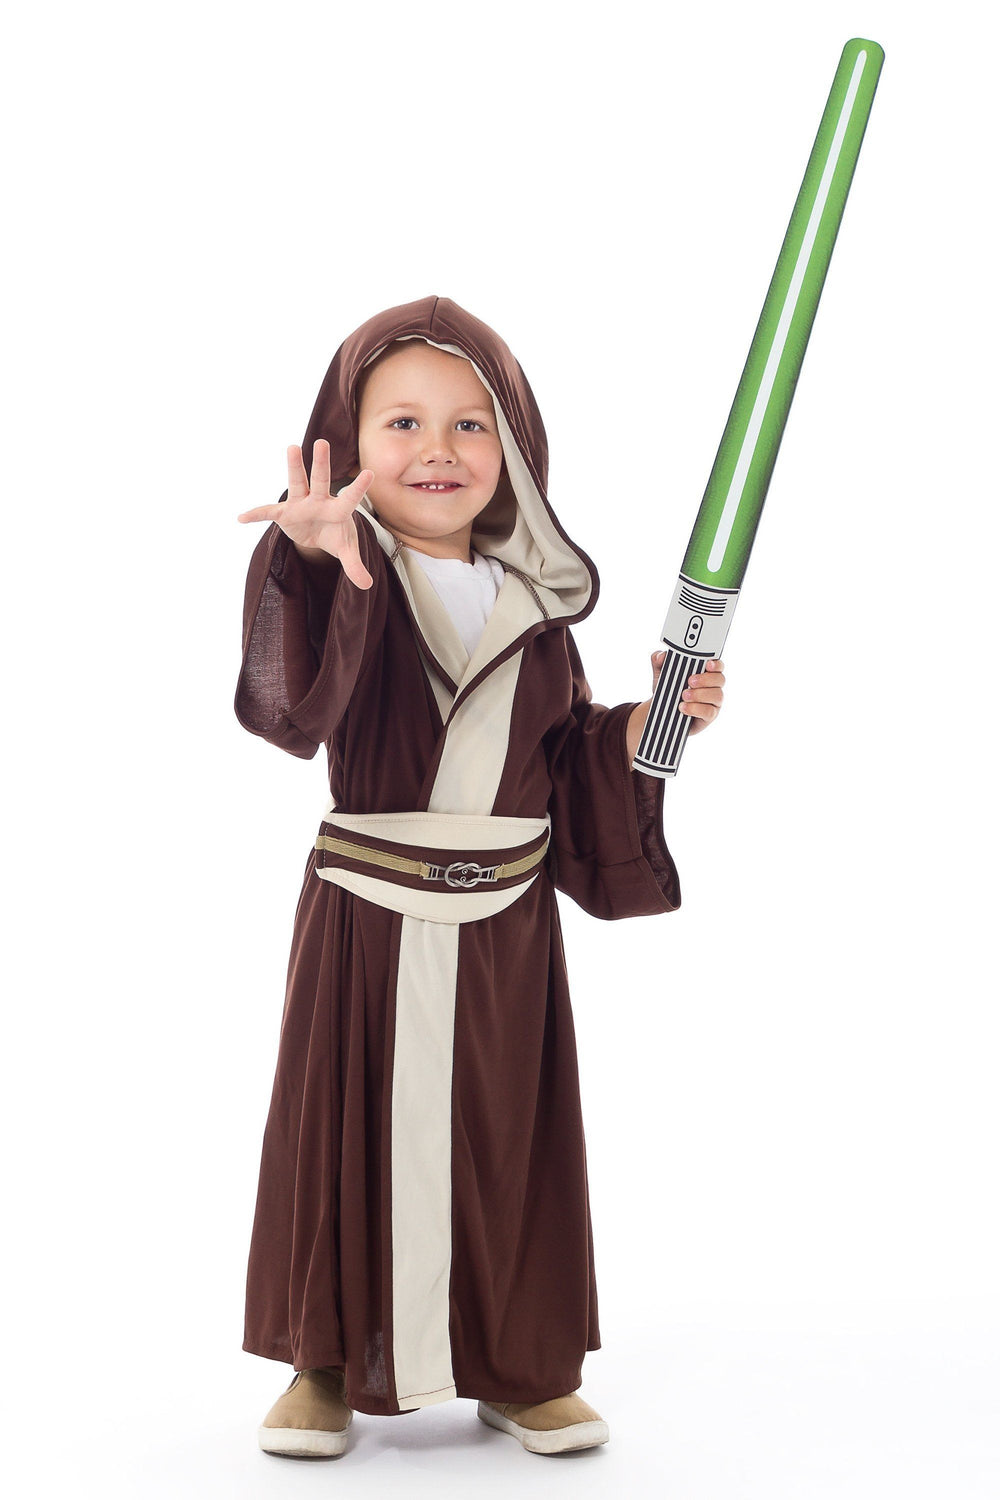 Star wars costume idea for boys